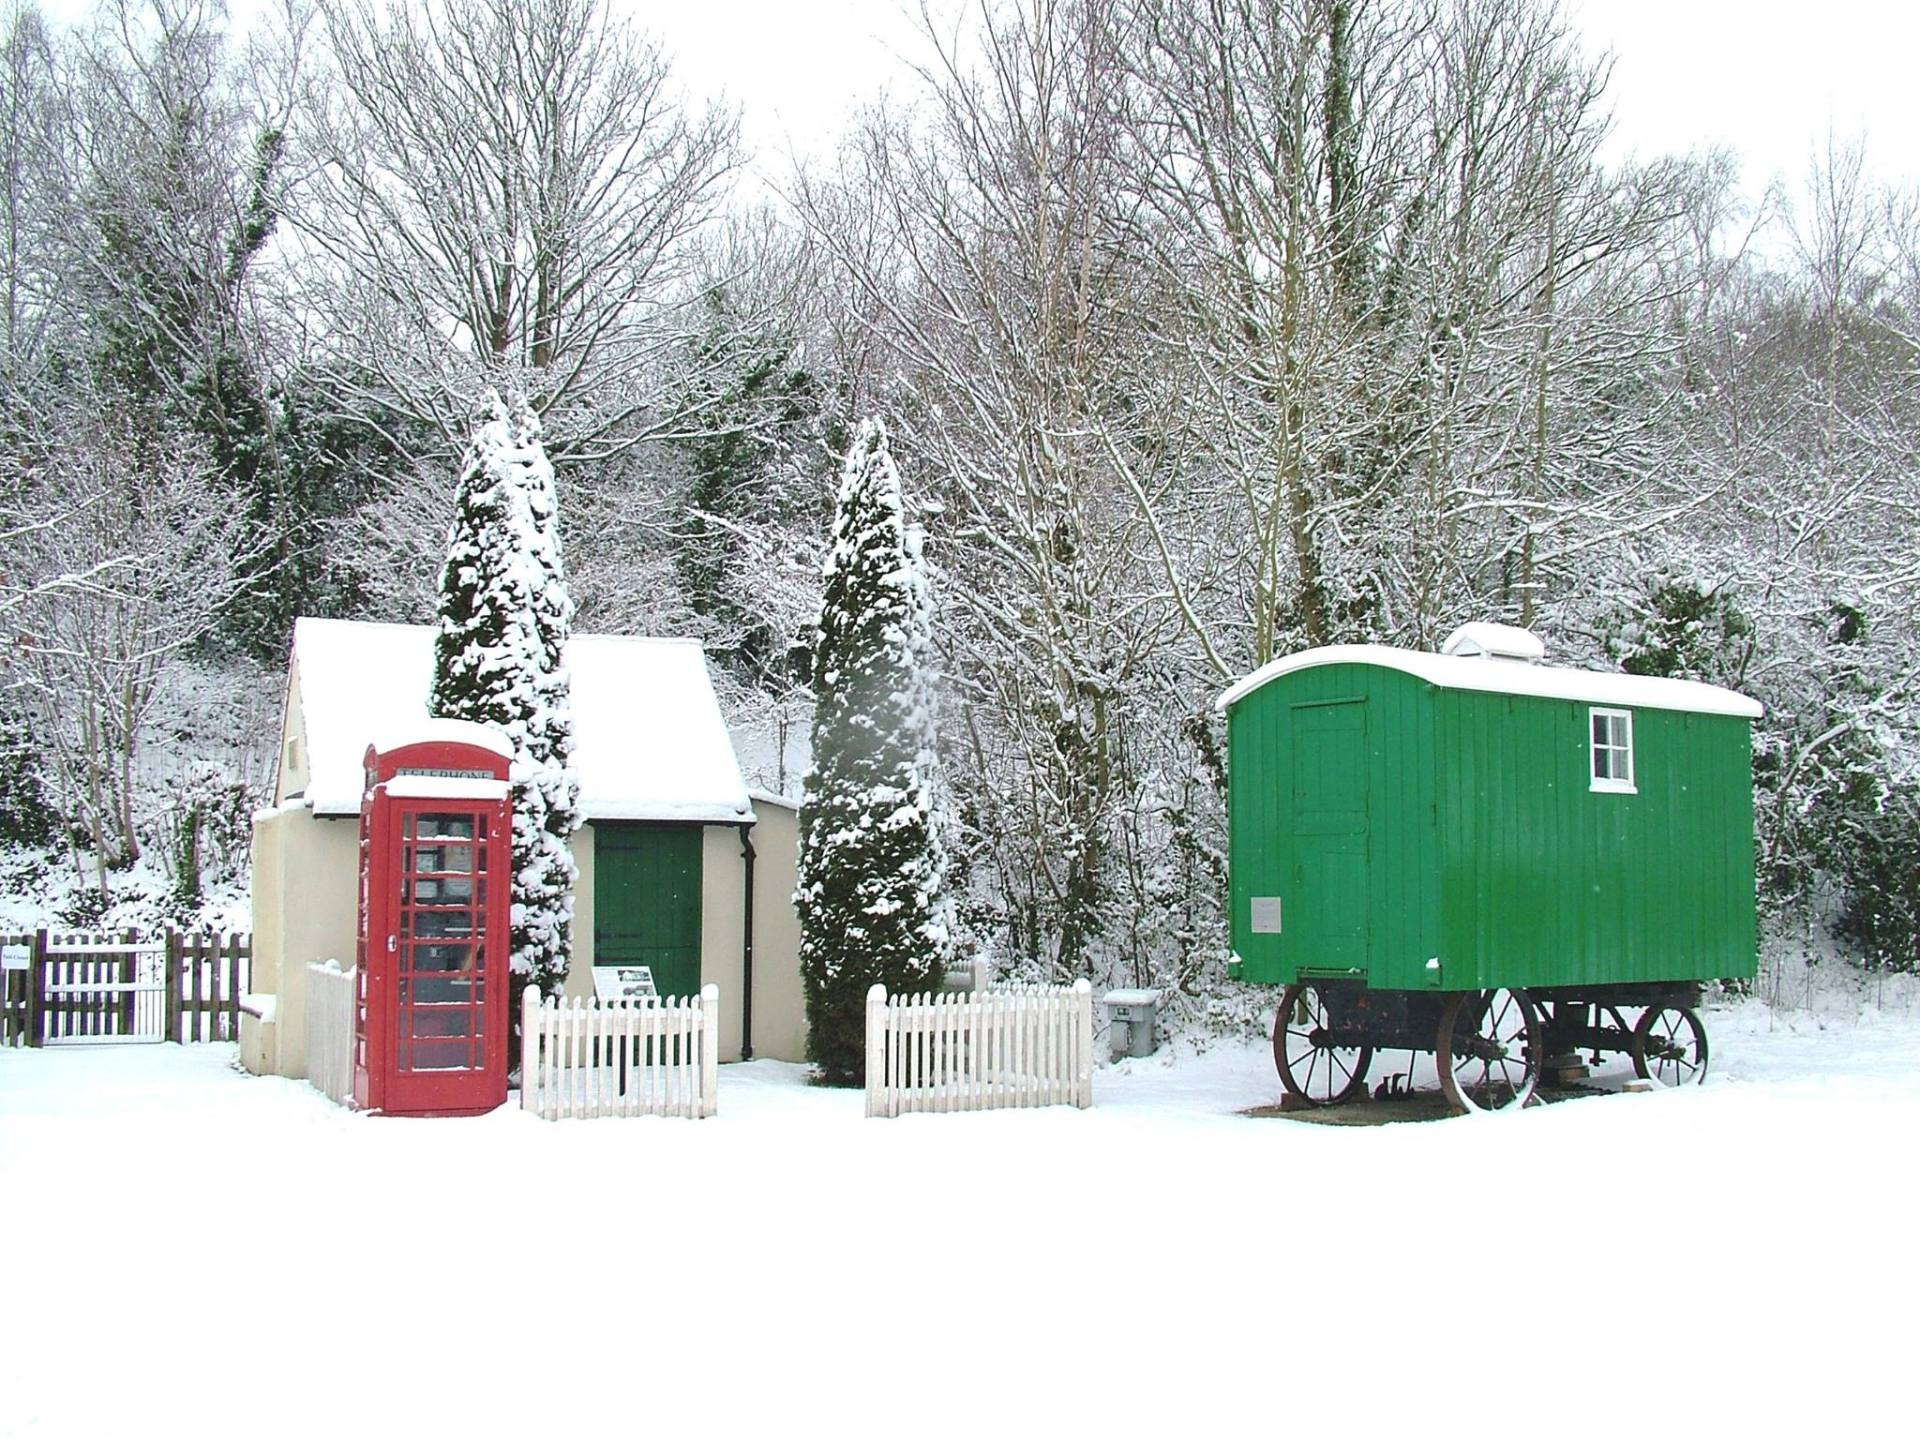 Come and see Santa at Amberley Museum - 5th, 6th, 12th, 13th, 19th & 20th December